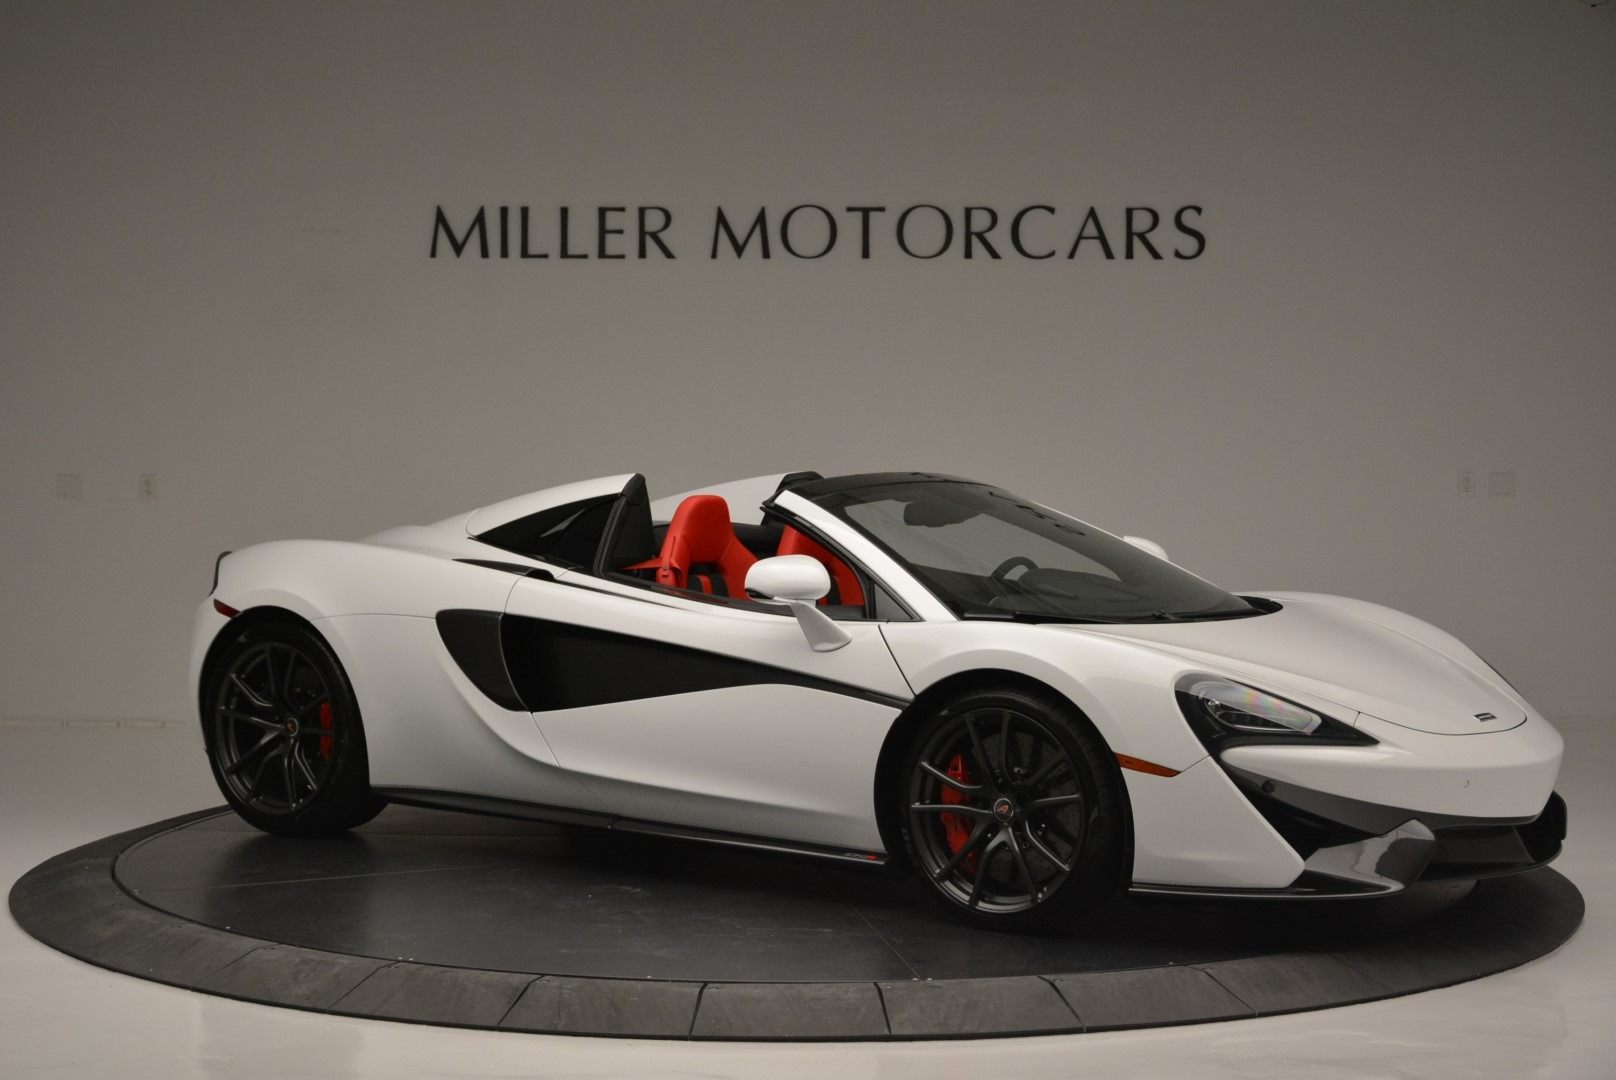 Used 2018 McLaren 570S Spider For Sale In Greenwich, CT. Alfa Romeo of Greenwich, 3149 2341_p10